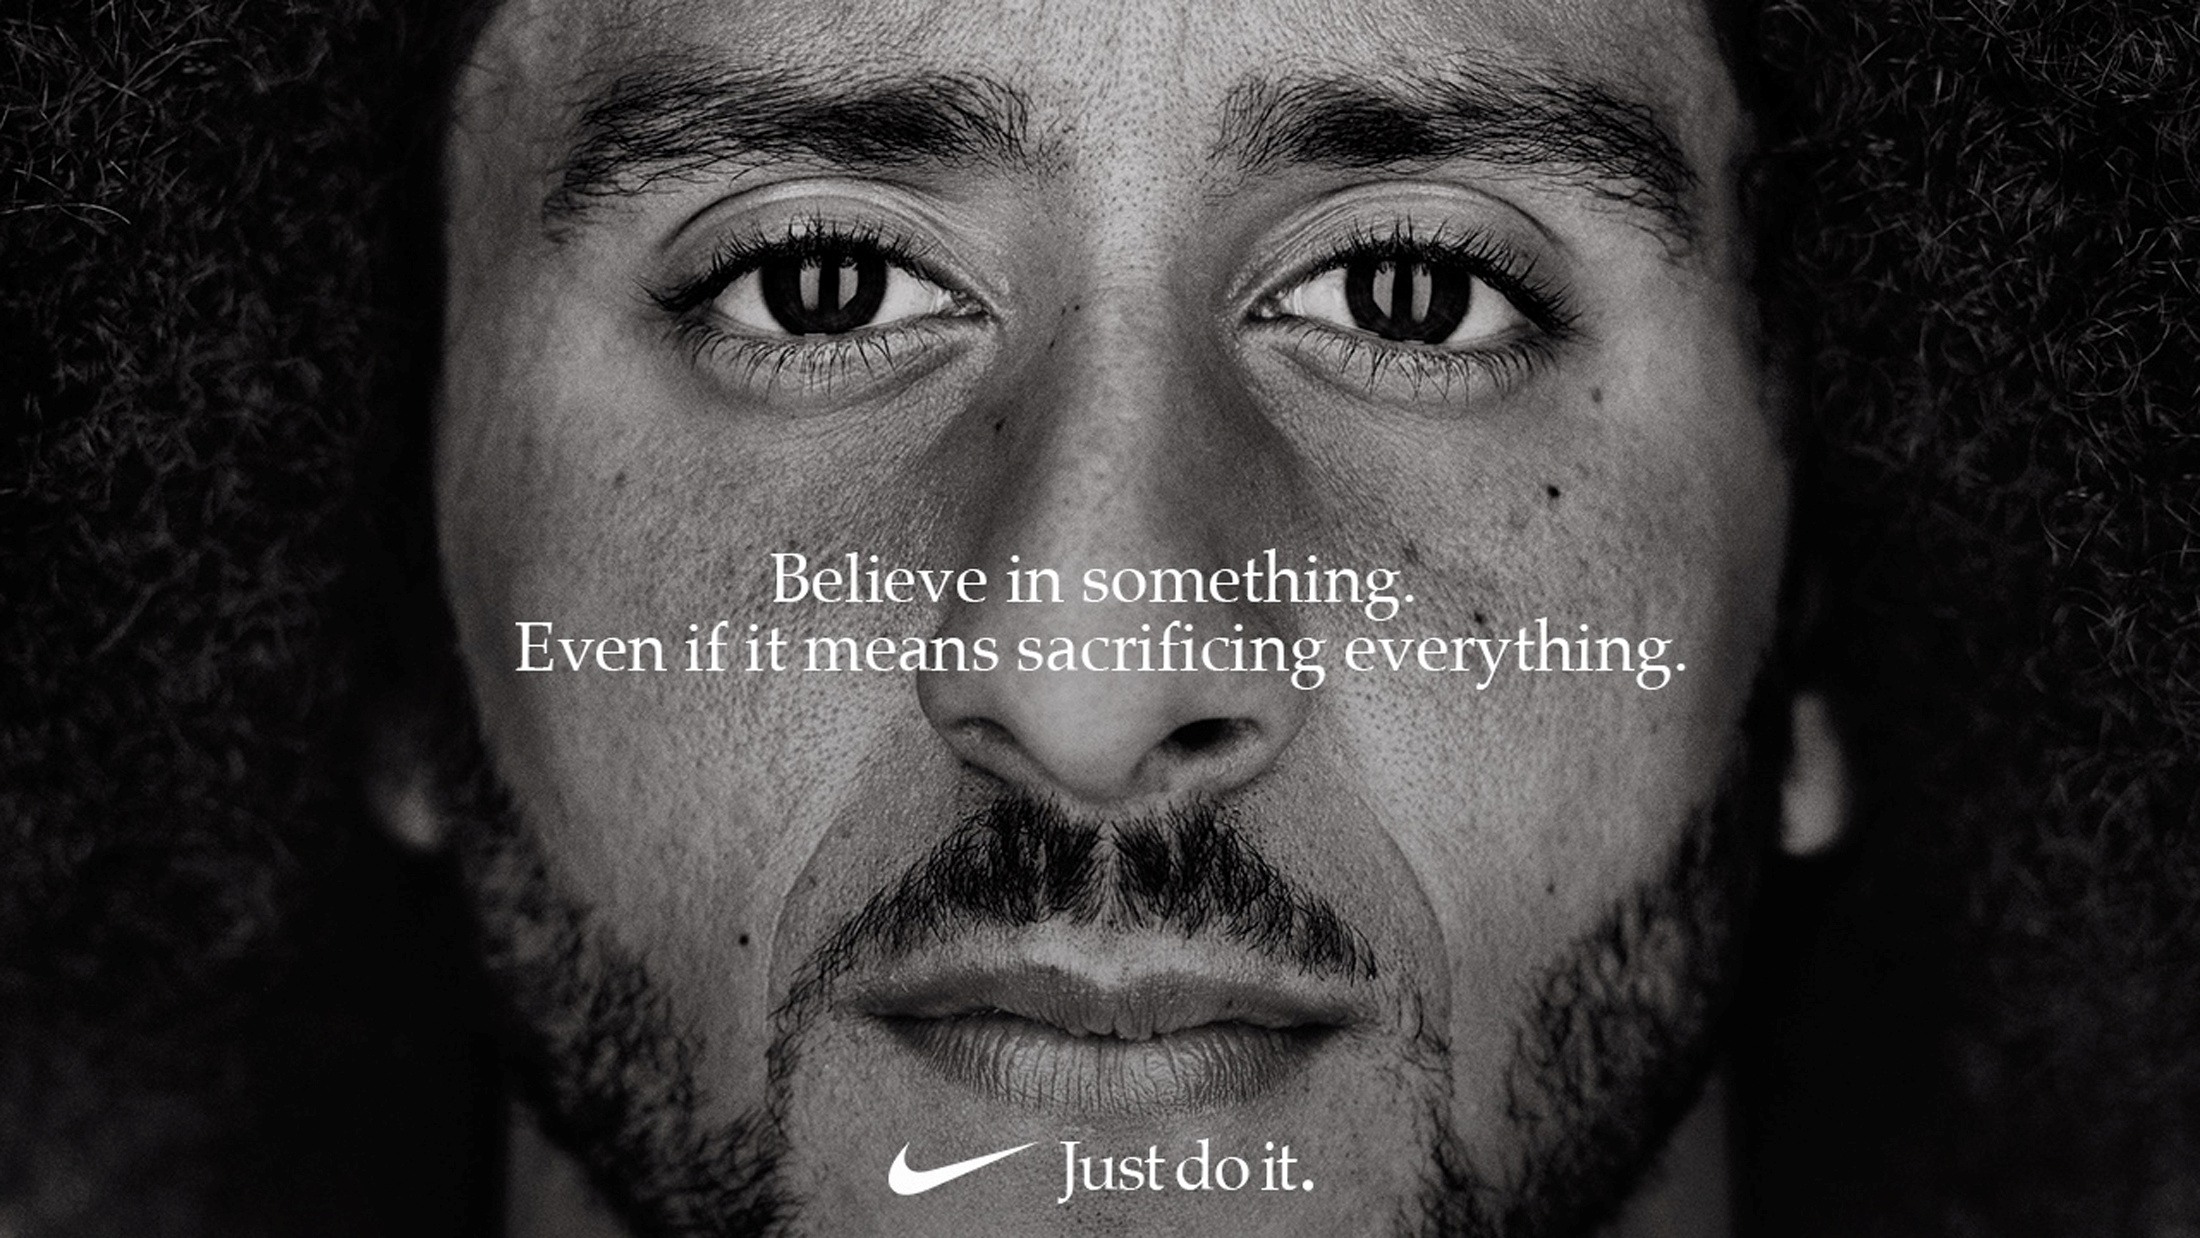 """Former San Francisco quarterback Colin Kaepernick appears as a face of Nike Inc advertisement marking the 30th anniversary of its """"Just Do It"""" slogan in this image released by Nike in Beaverton, Oregon, U.S., September 4, 2018. Courtesy Nike/Handout via REUTERS ATTENTION EDITORS - THIS IMAGE HAS BEEN SUPPLIED BY A THIRD PARTY. NO RESALES. NO ARCHIVES. MANDATORY CREDIT. - RC19C7495600"""